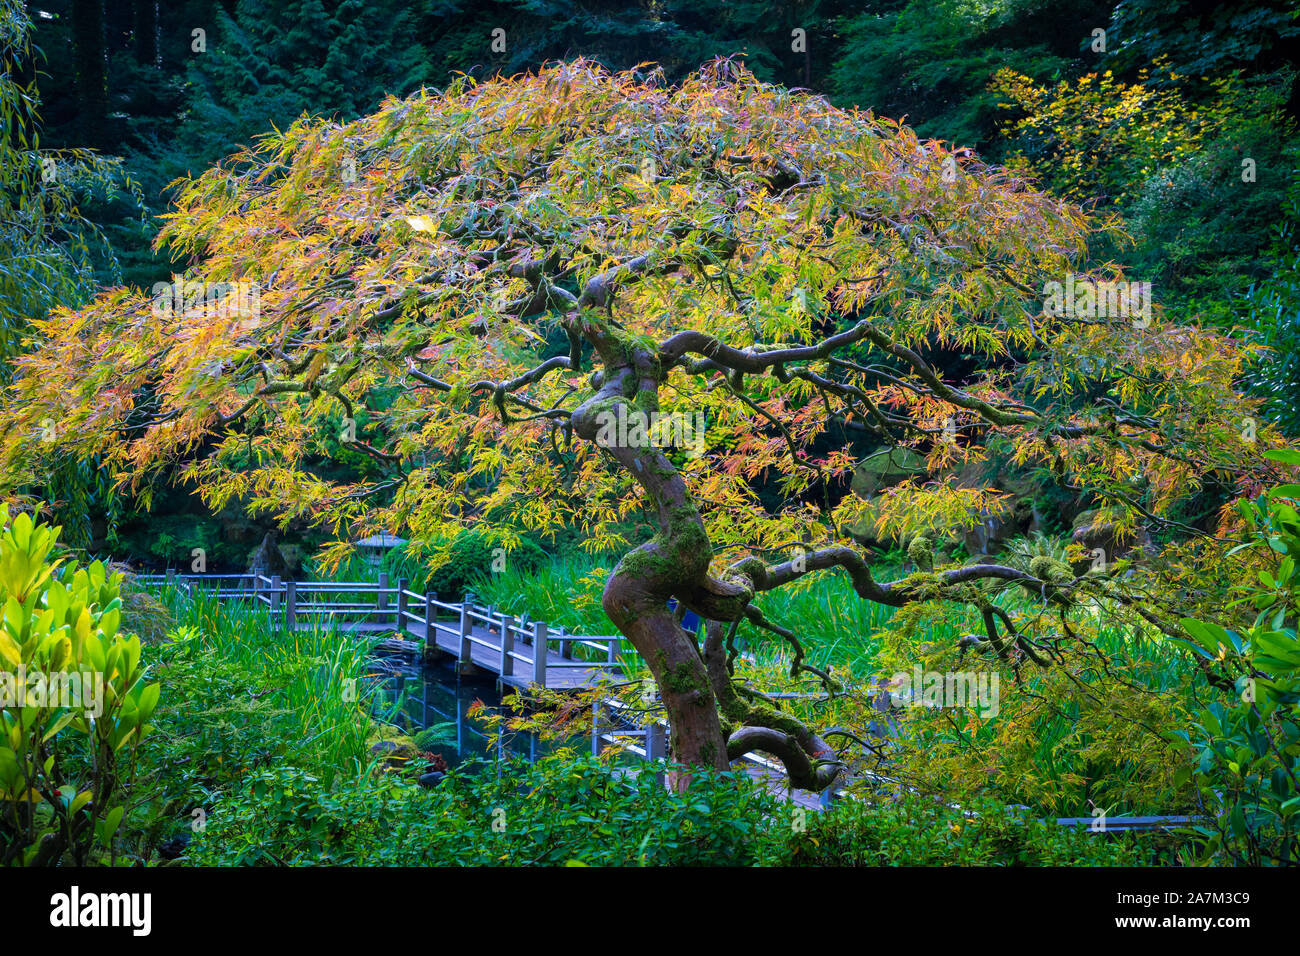 The Portland Japanese Garden is a traditional Japanese garden occupying 12 acres, located within Washington Park in the West Hills of Portland, Oregon Stock Photo